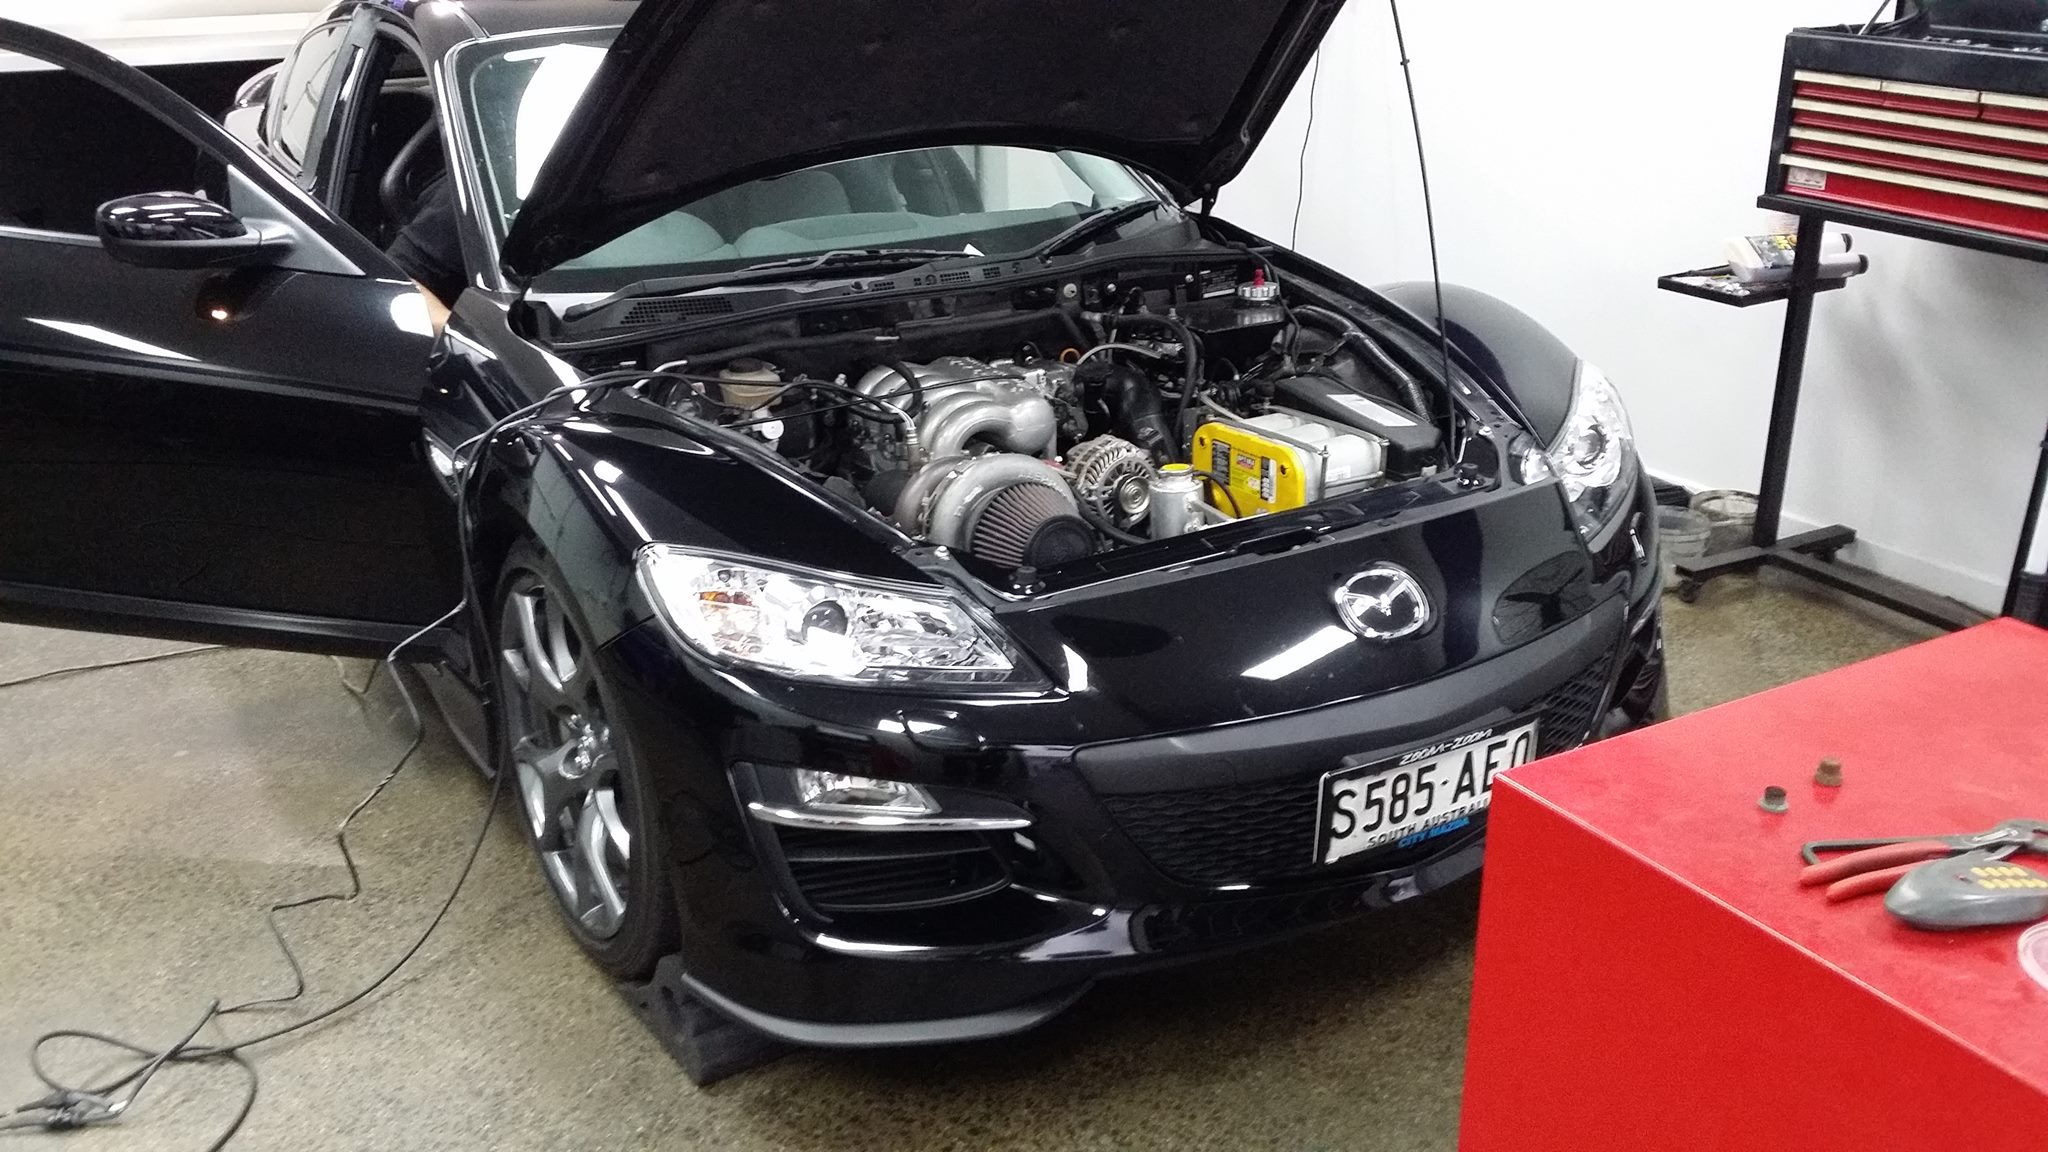 2009 rx-8 with a turbocharged 20b rotary – engine swap depot